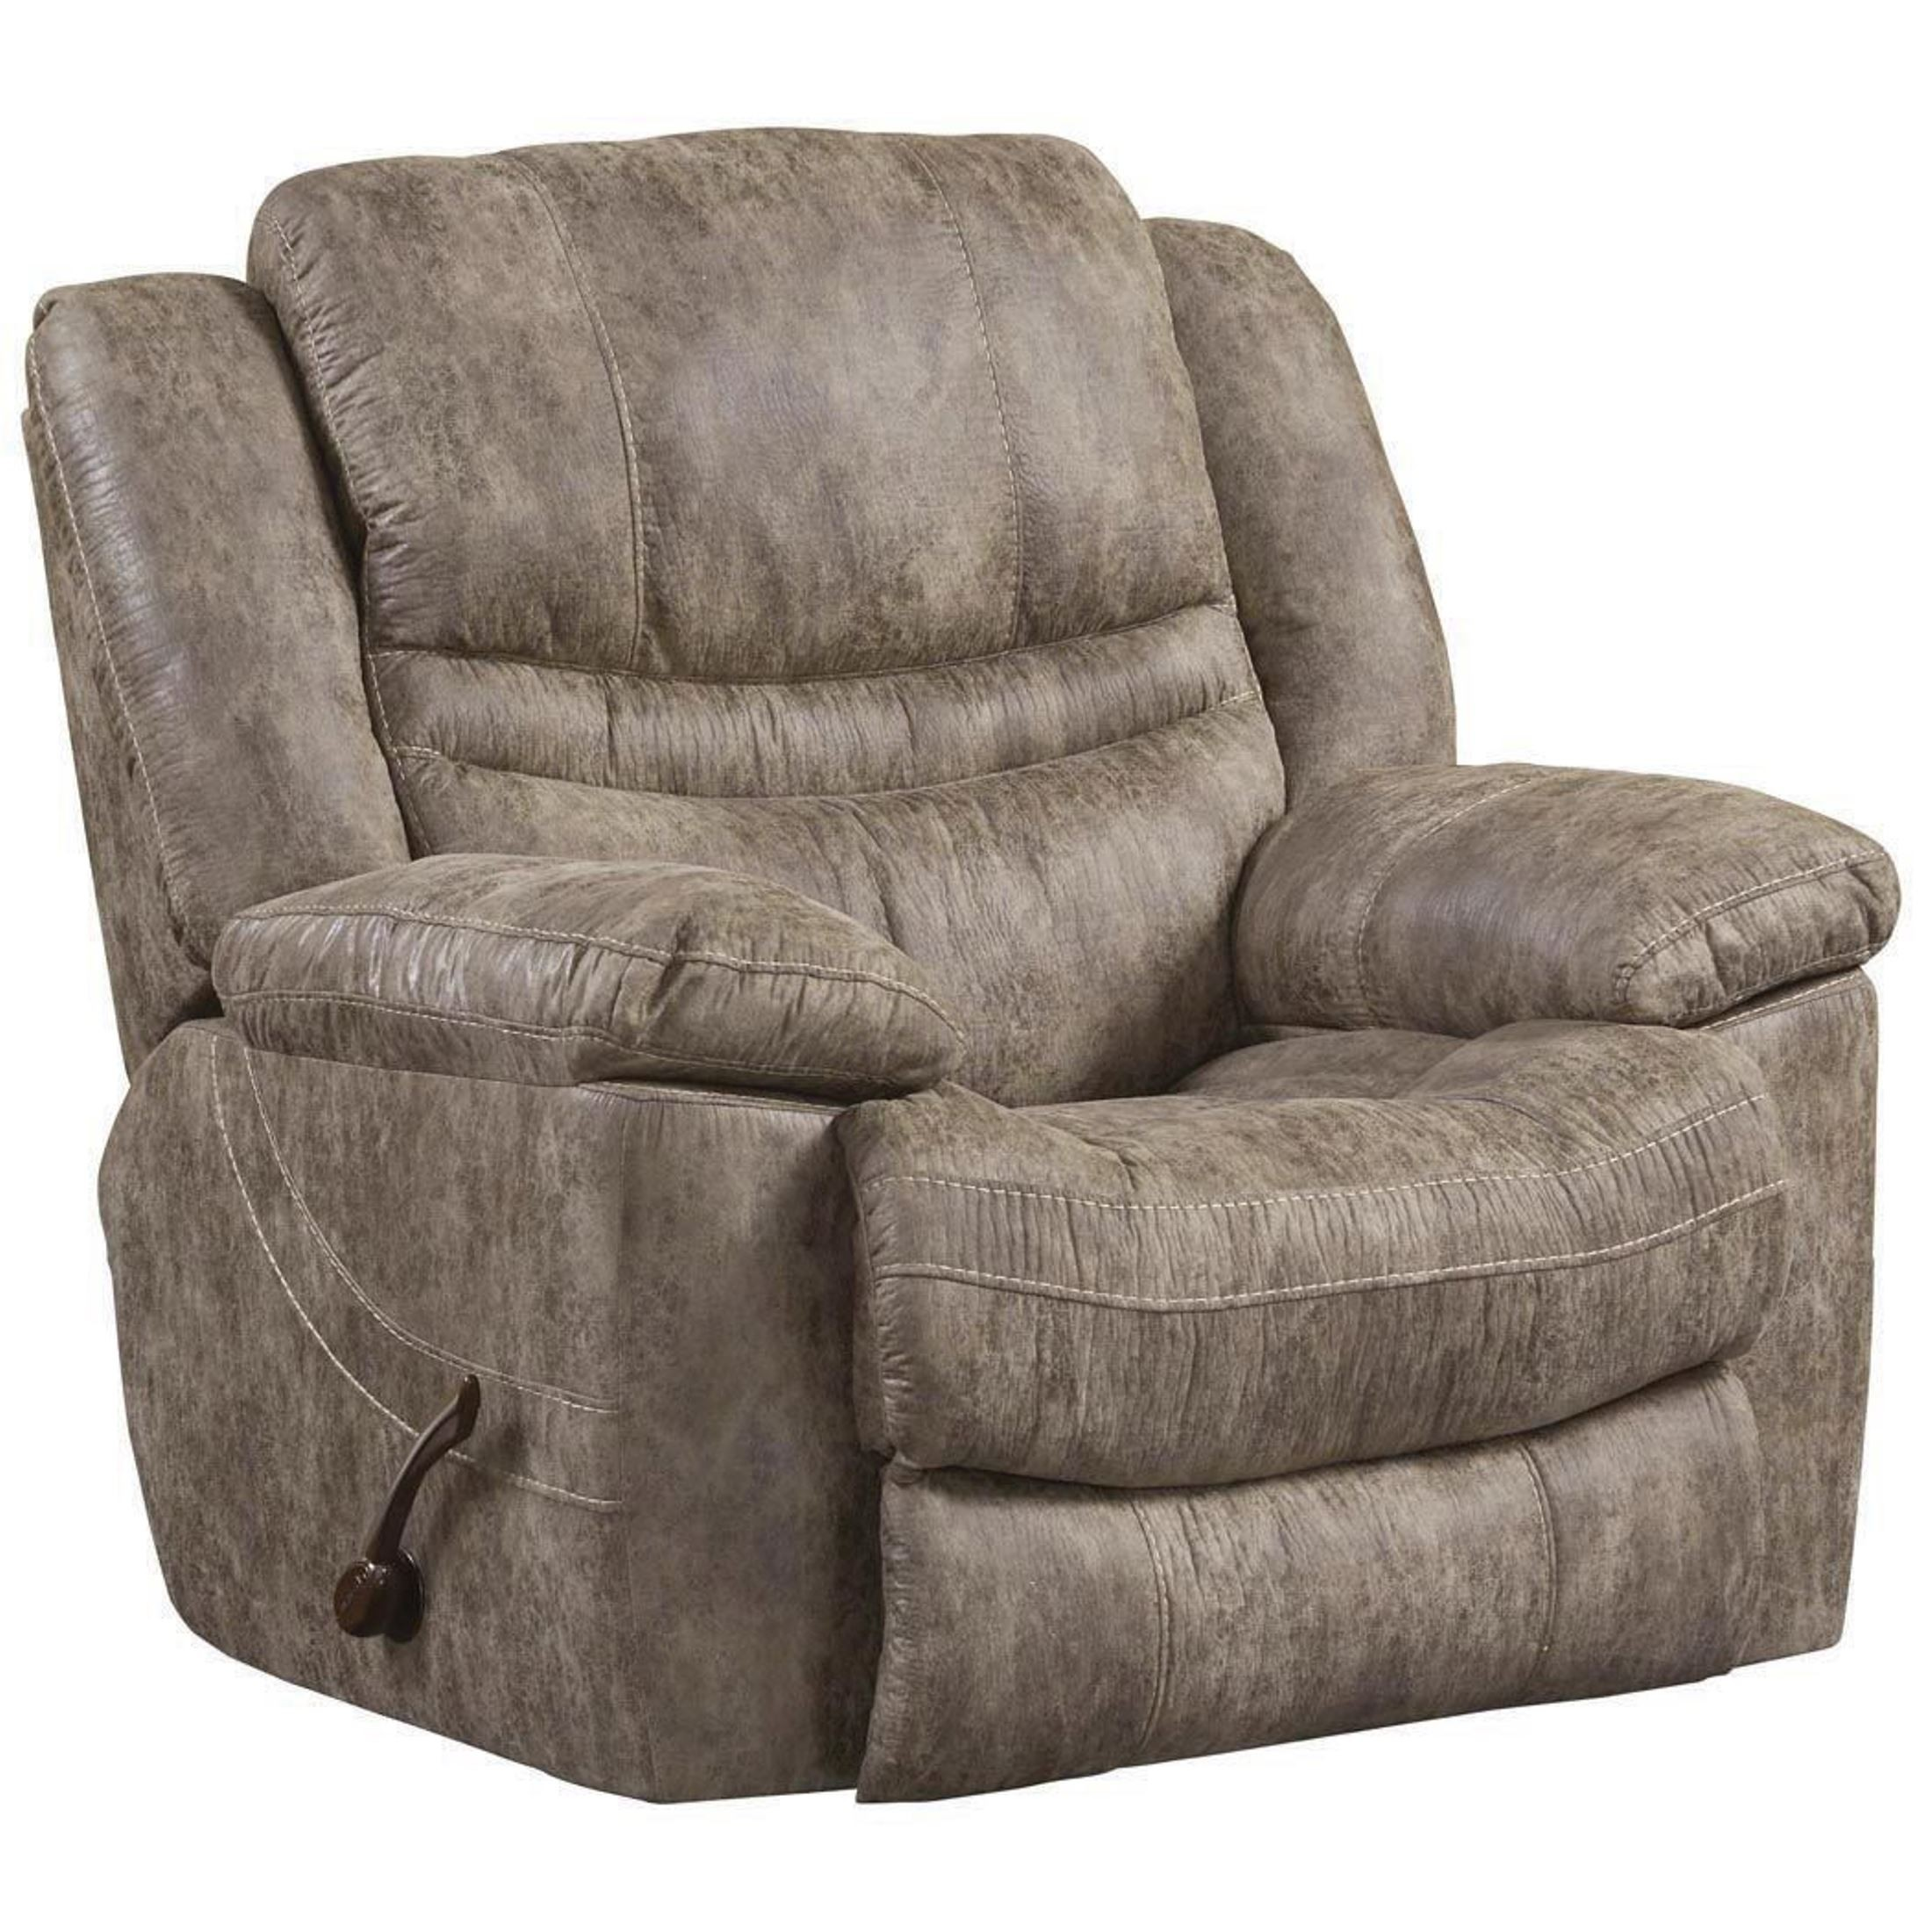 Valiant marble power glider recliner from catnapper 614006000000000000 coleman furniture Catnapper loveseat recliner